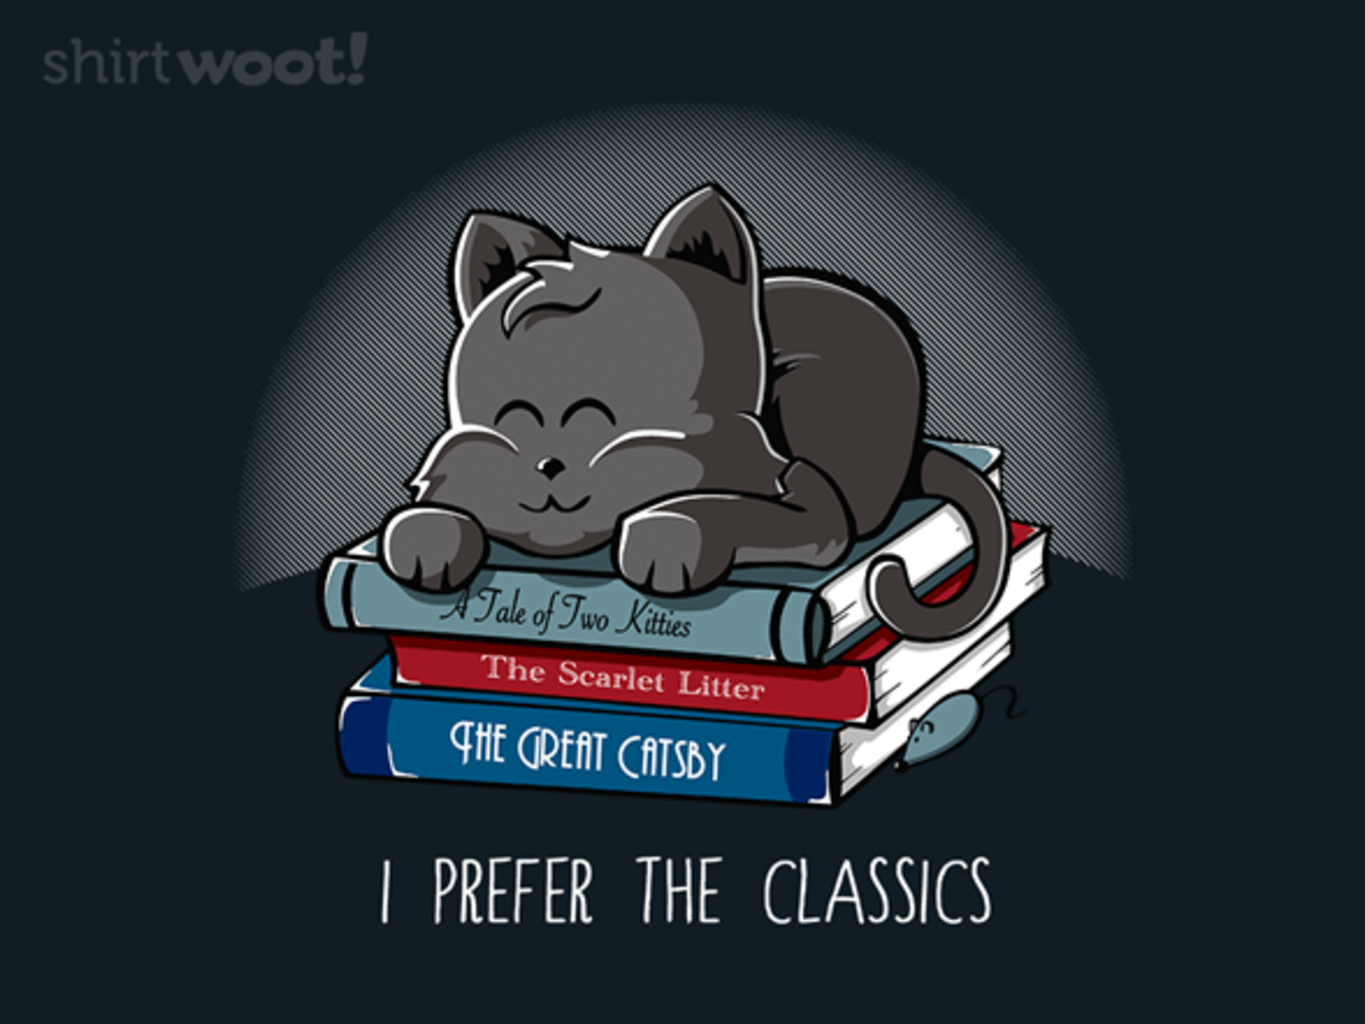 Woot!: Kitty Litterature